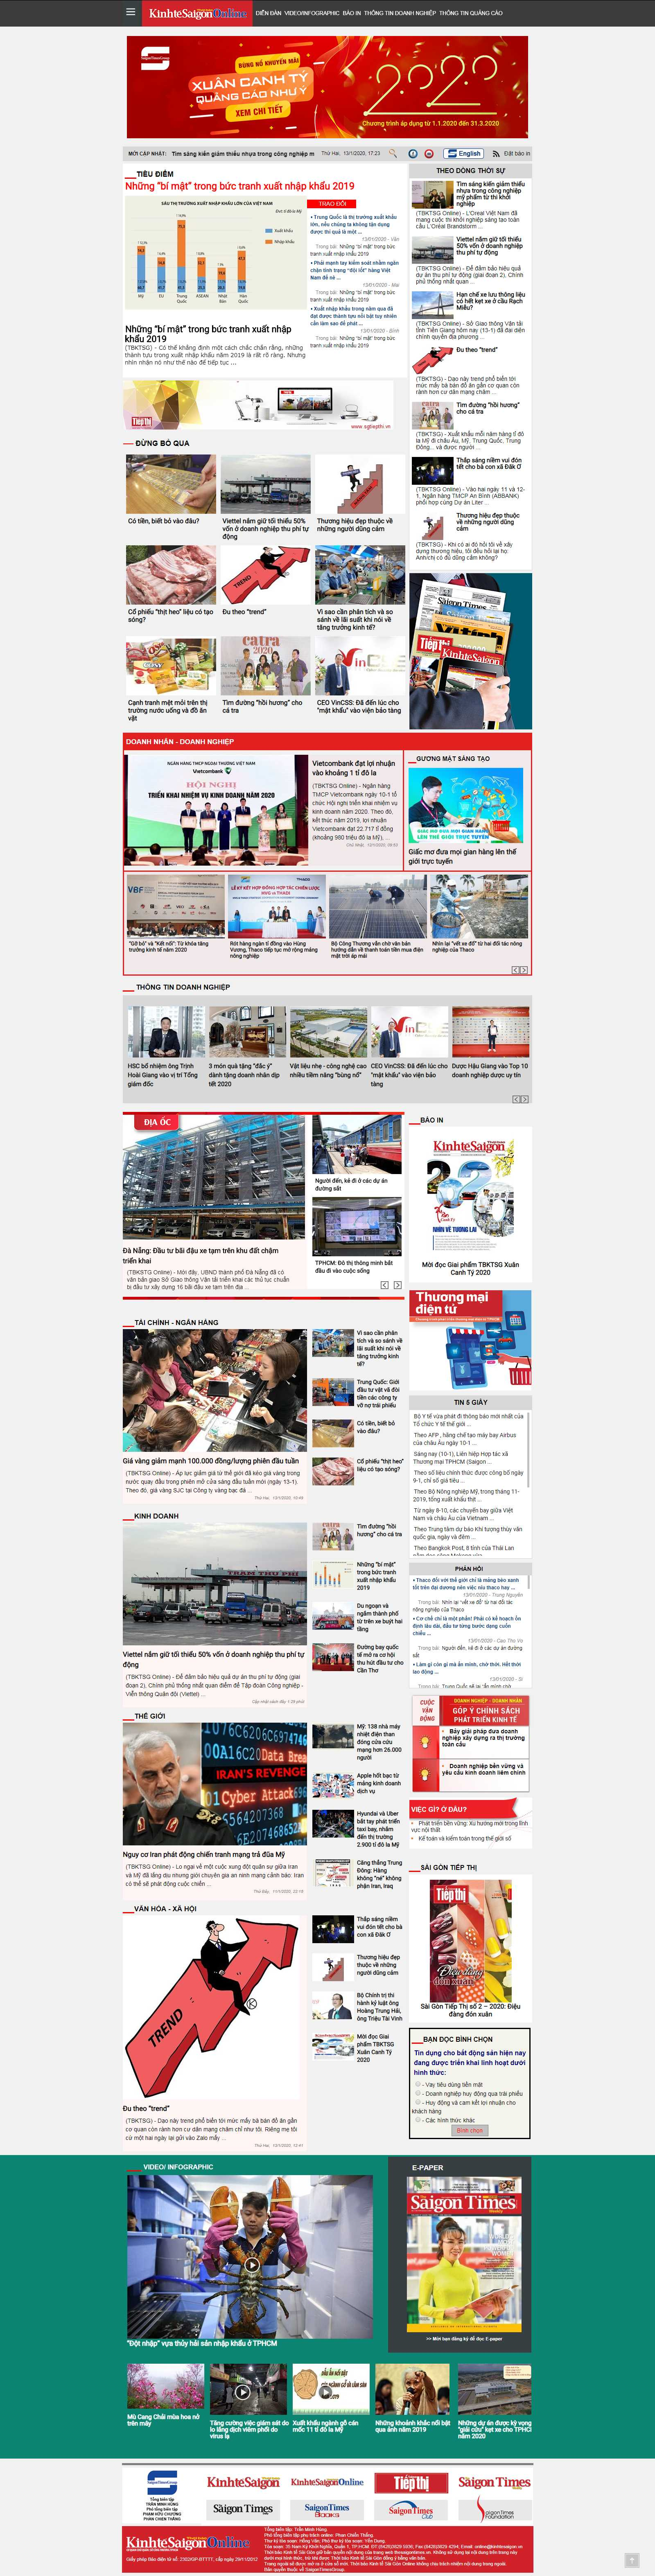 Thiết kế Web Quận 10 - www.thesaigontimes.vn